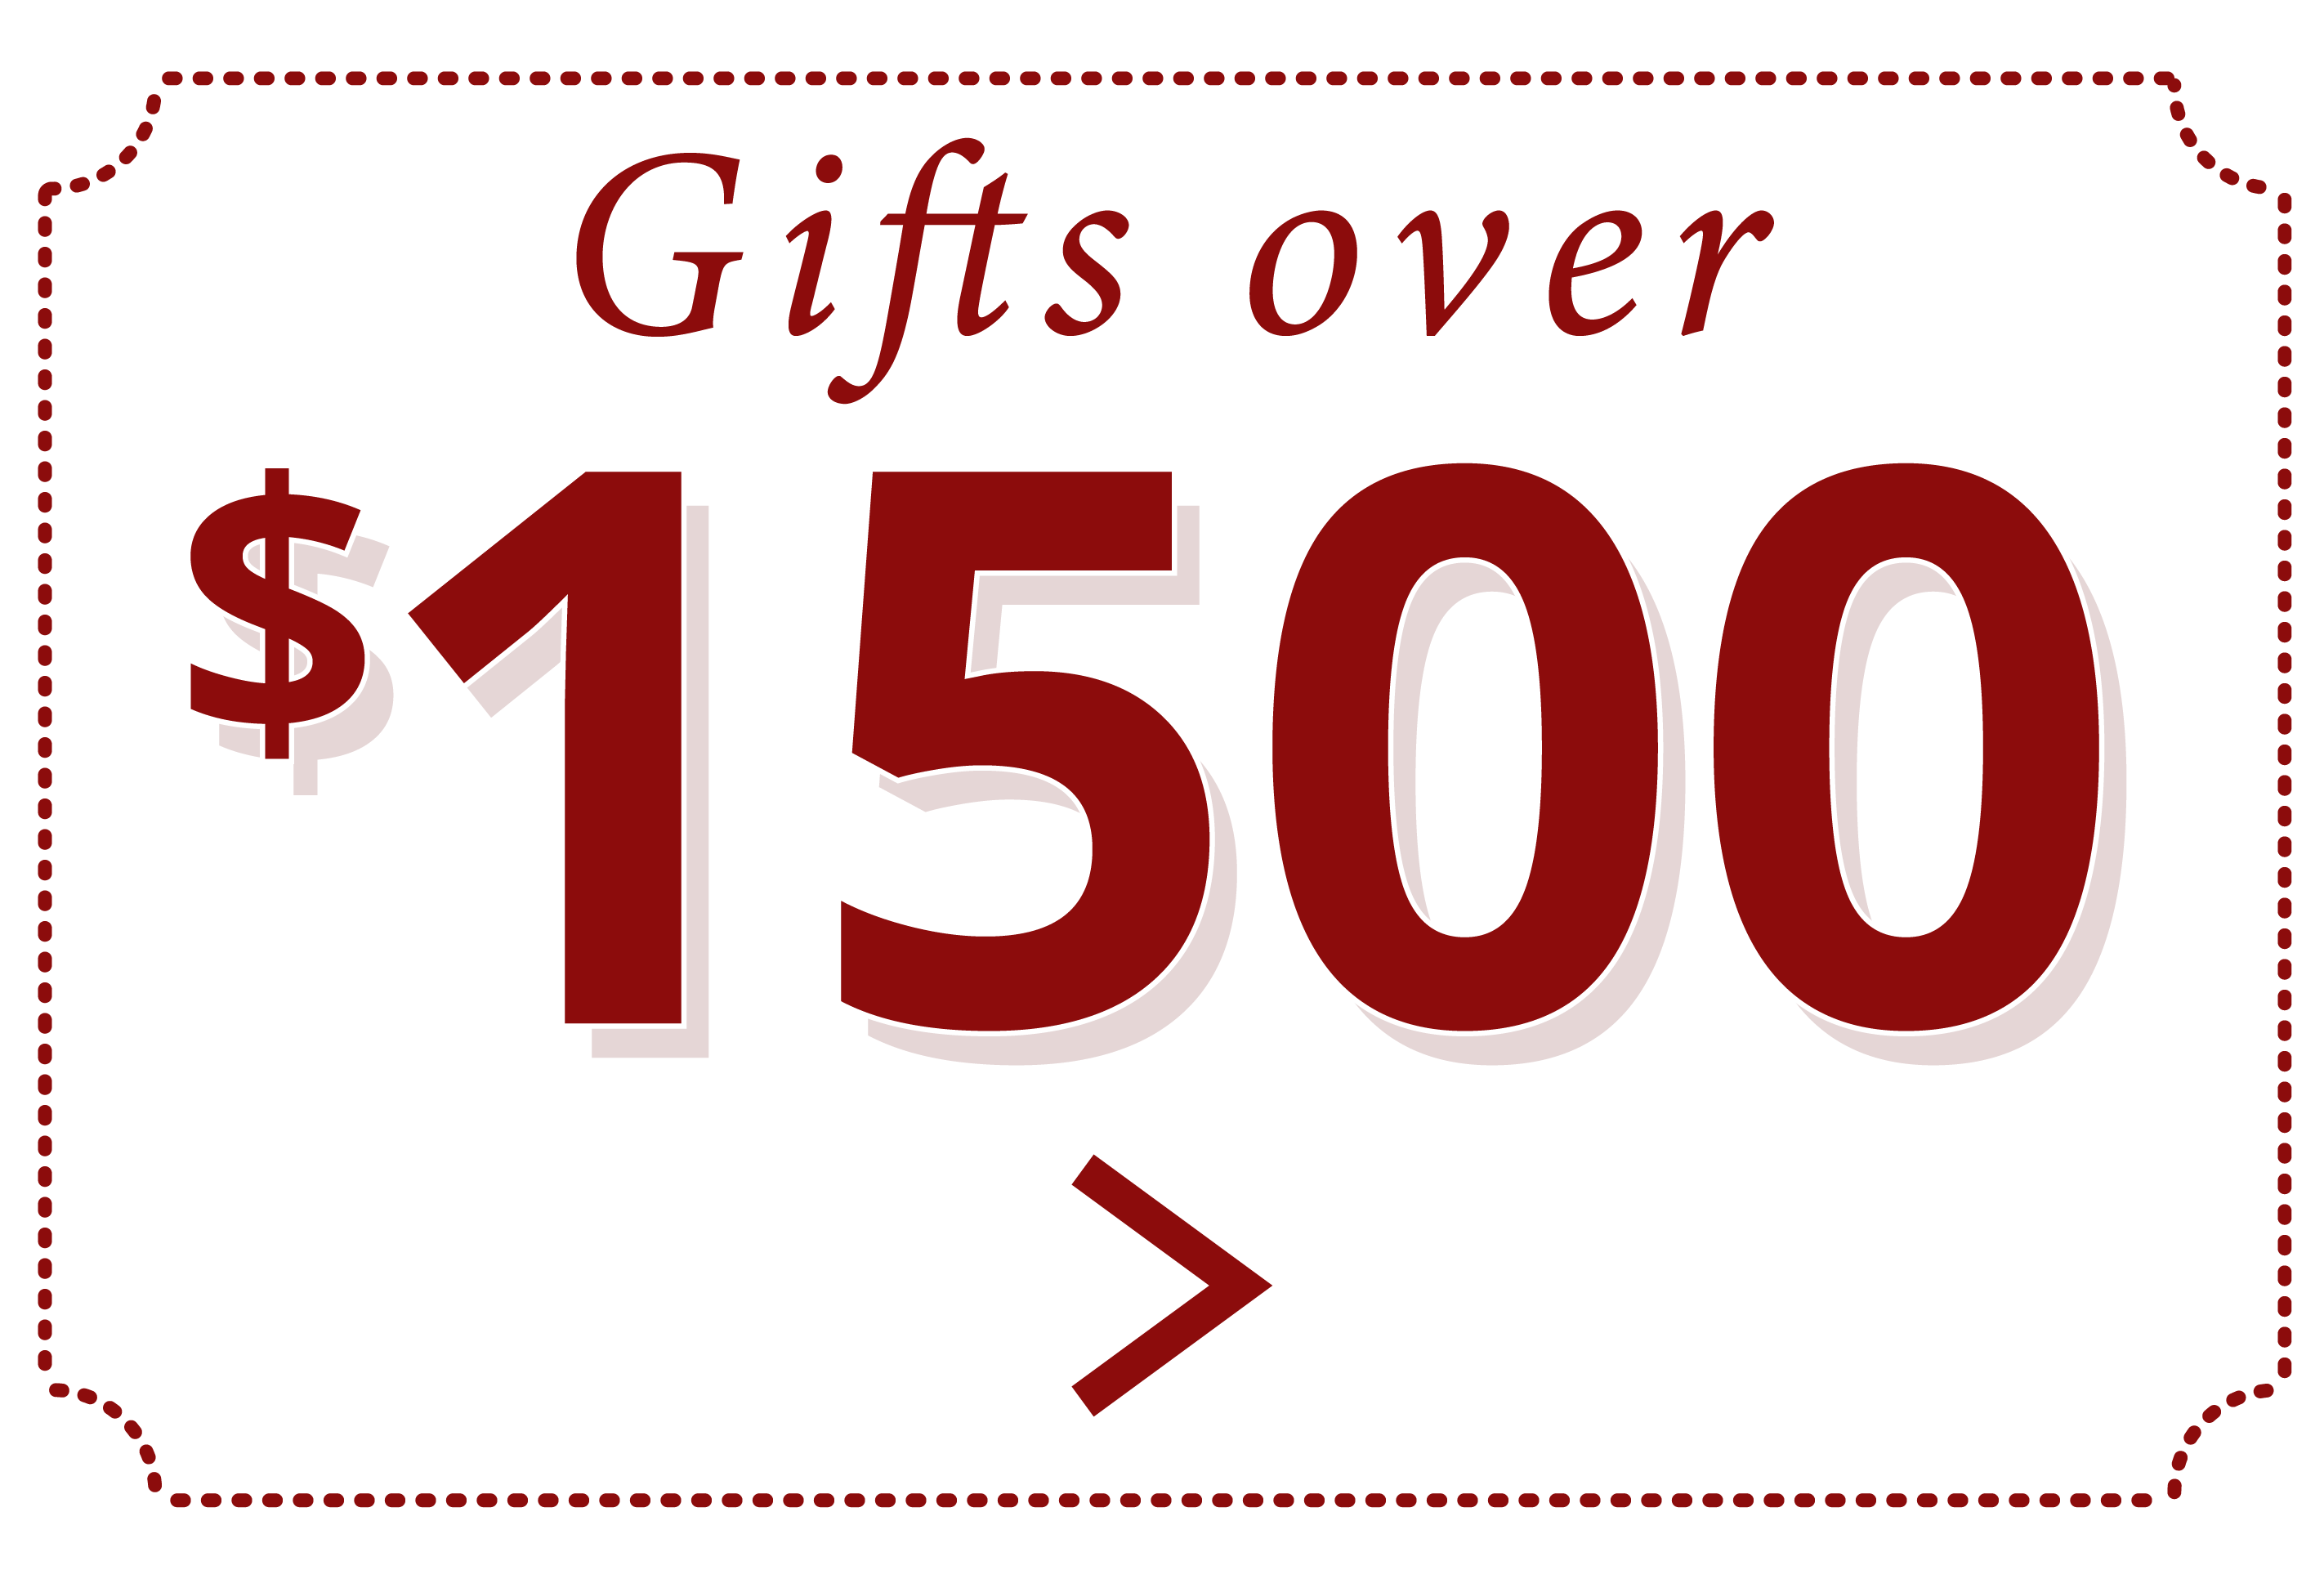 Gifts Over $1500